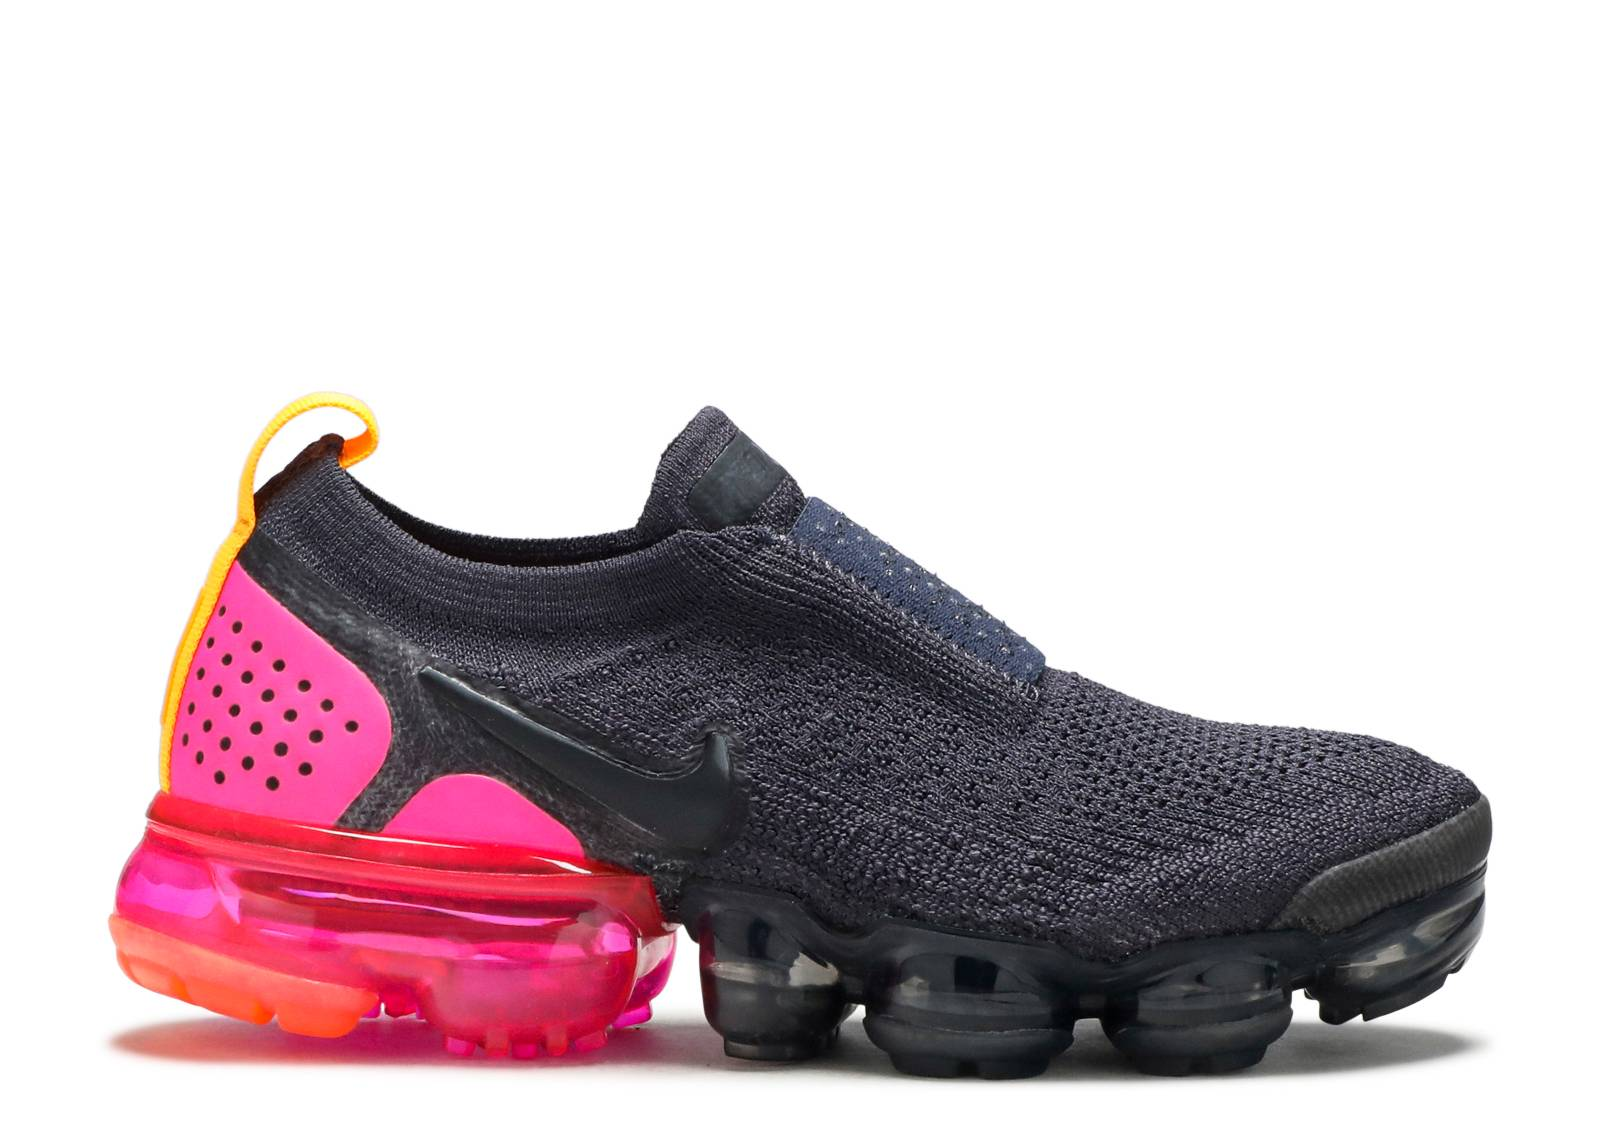 premium selection df289 27333 Wmns Nike Air Vapormax Fk Moc 2